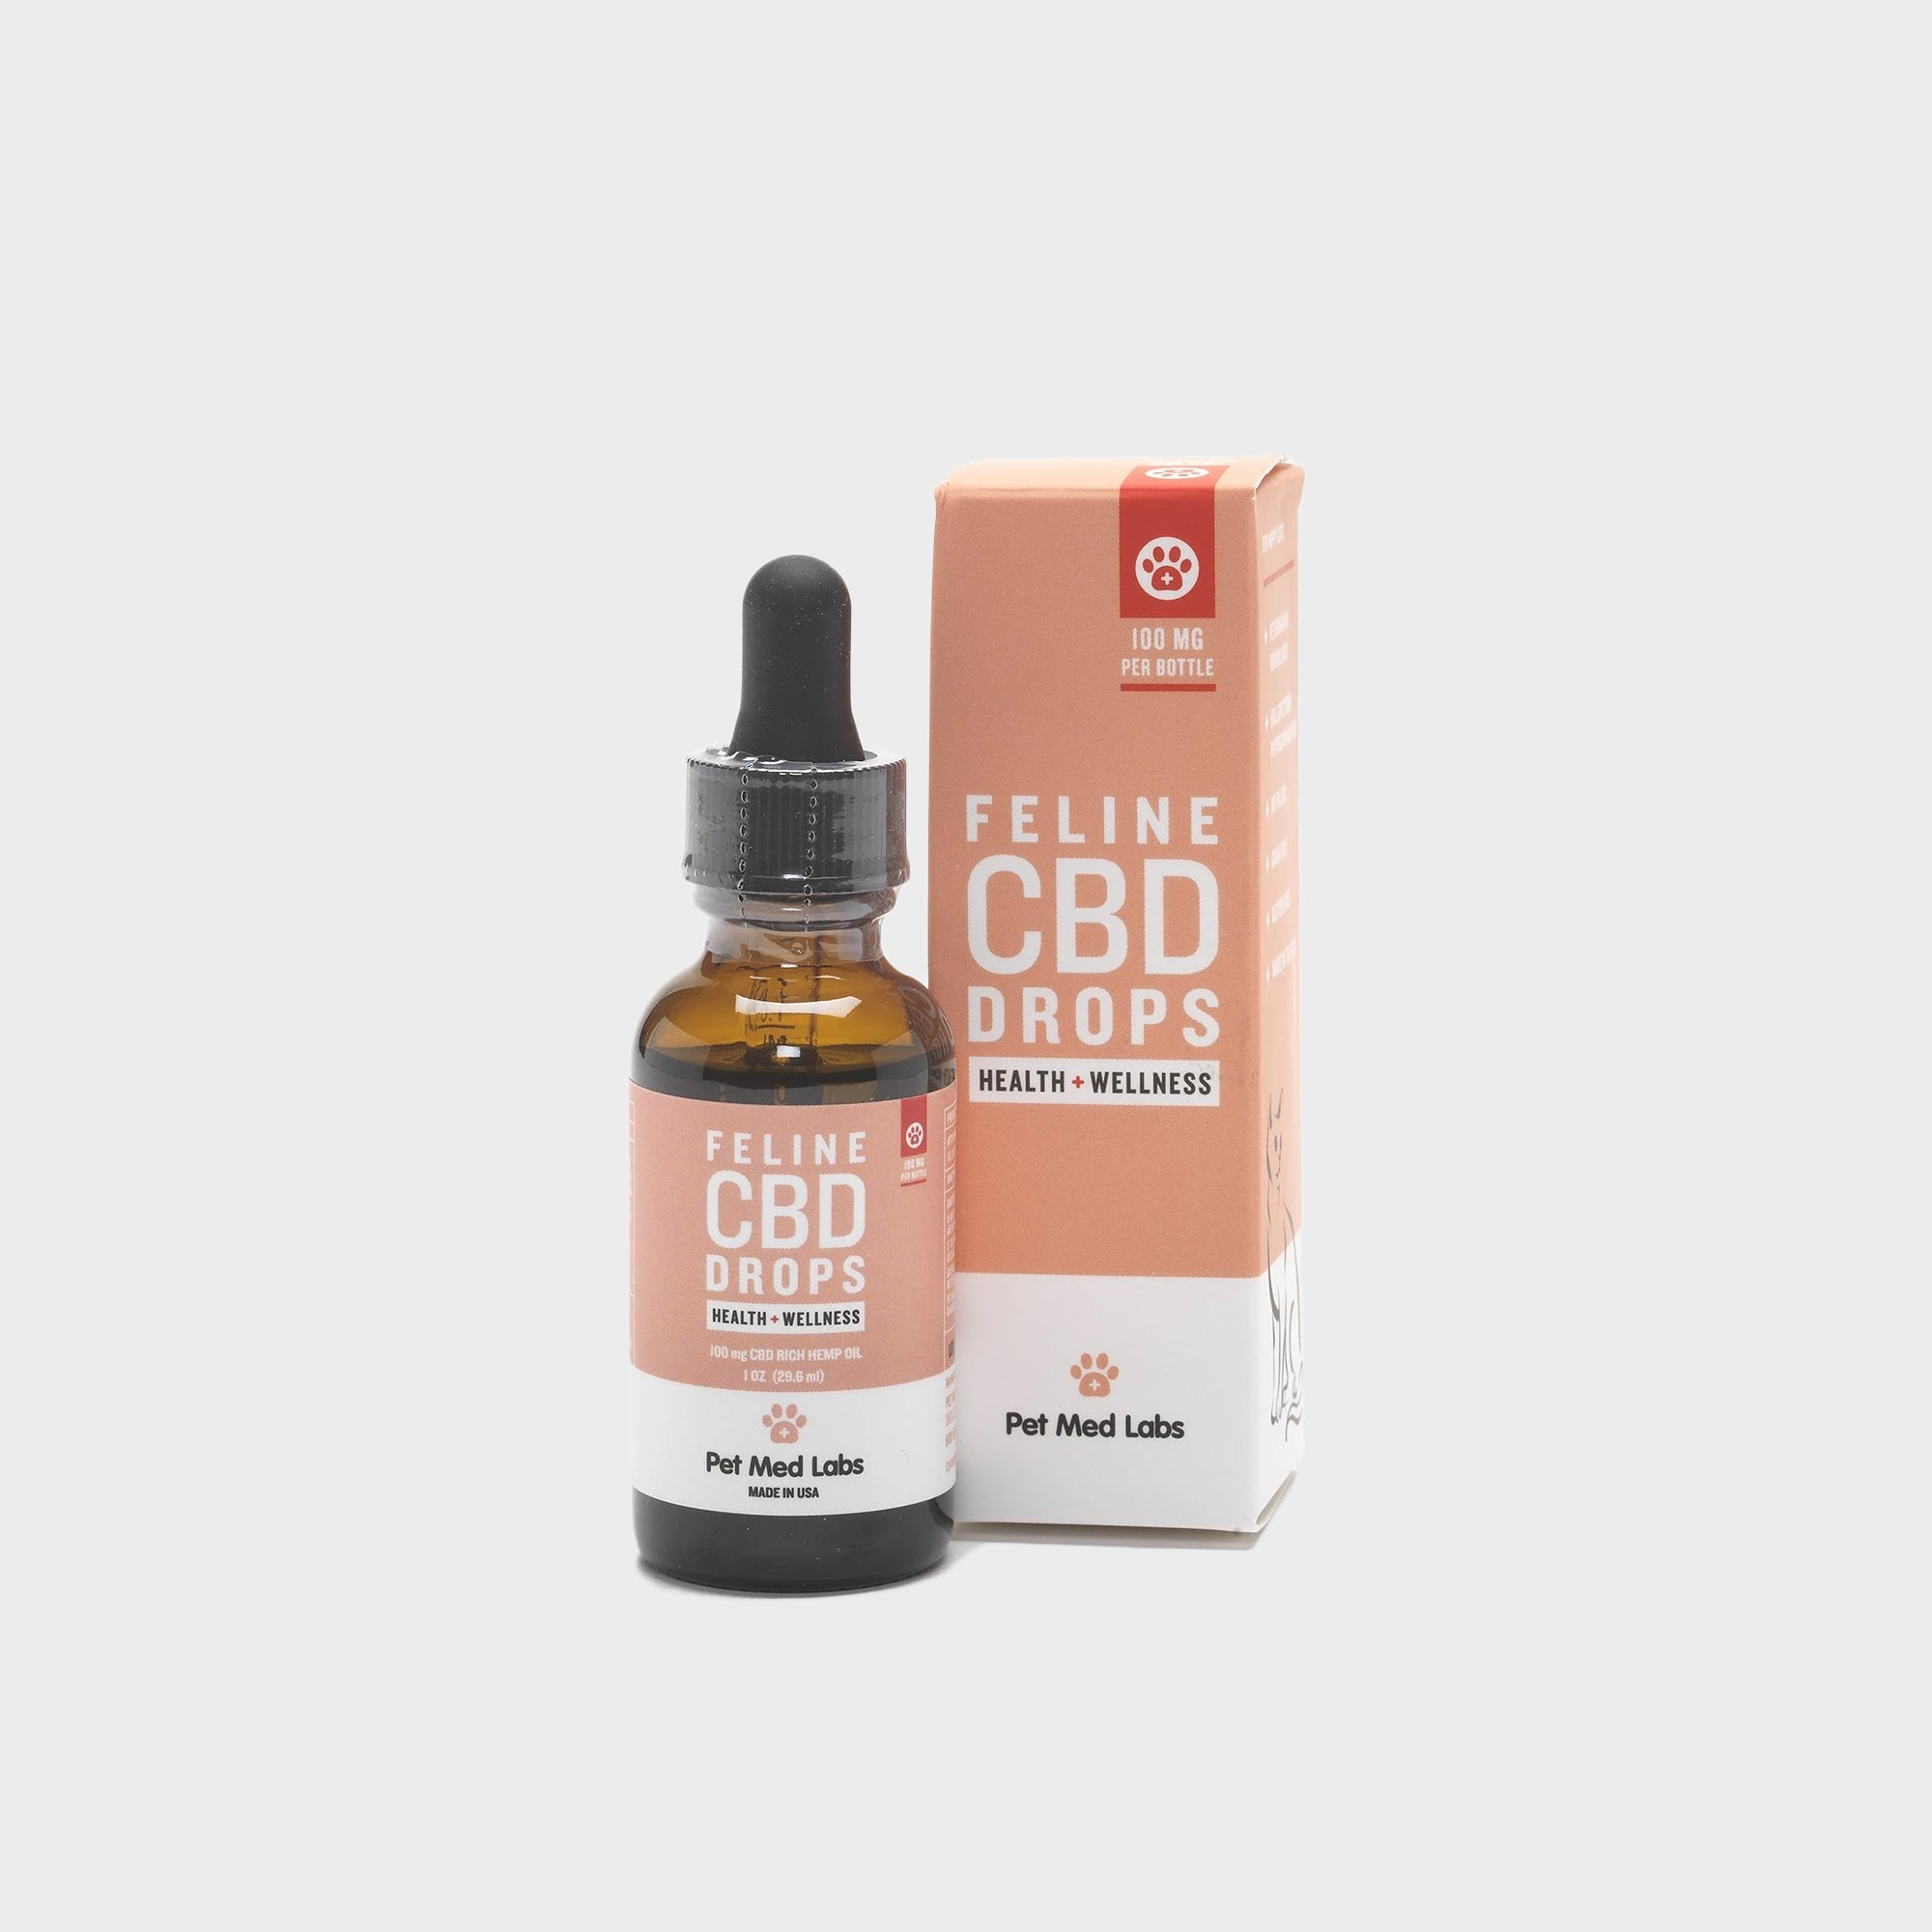 FELINE CBD DROPS - Pet Med Labs